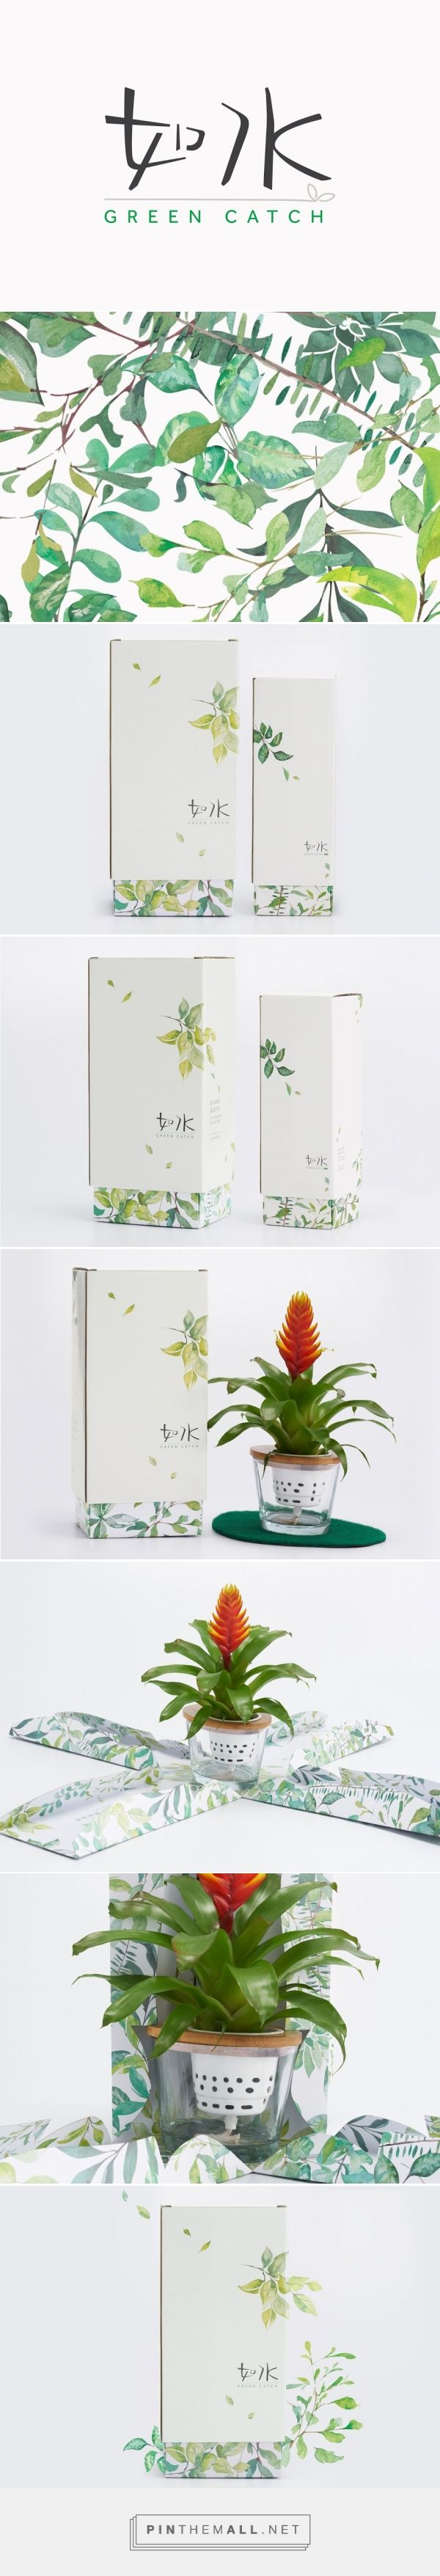 Green Catch plants packaging design by Box Brand Design (Hong Kong) - http://www.packagingoftheworld.com/2016/05/green-catch.html